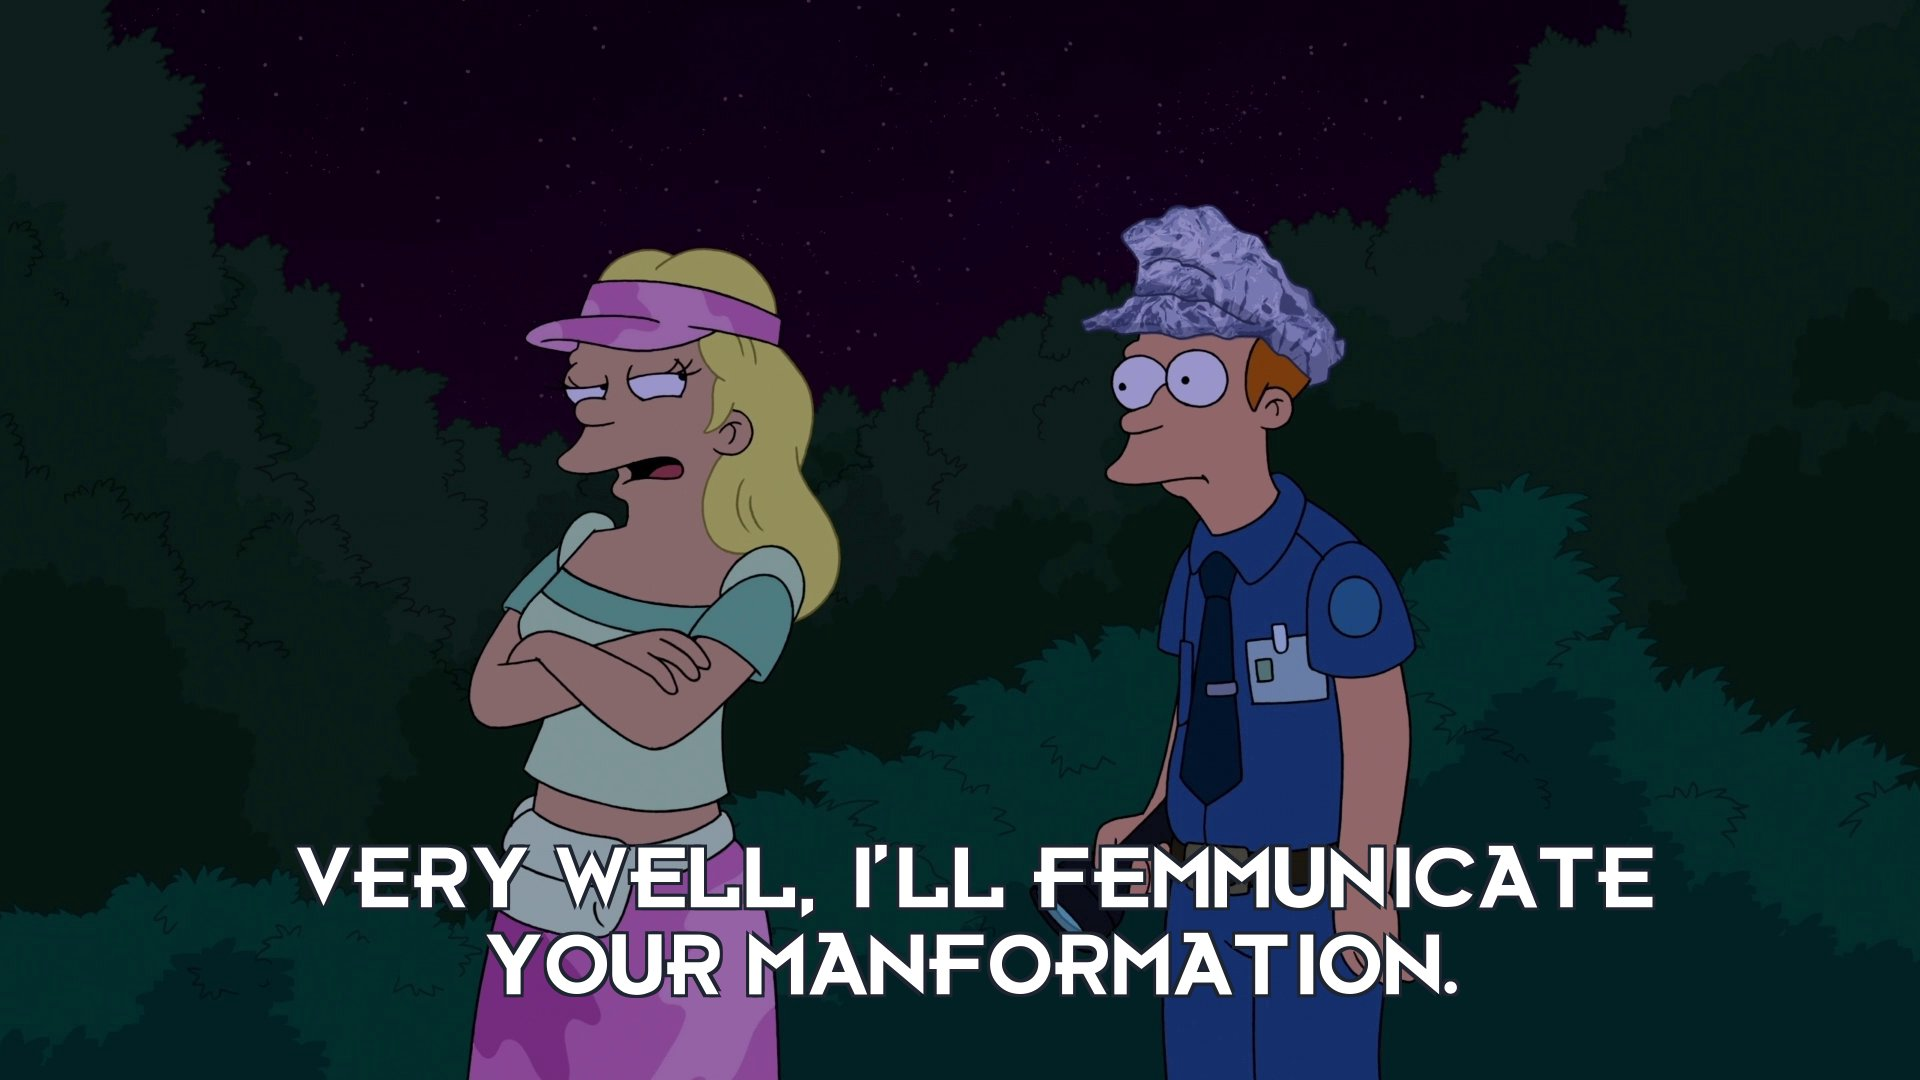 Frida Waterfall: Very well, I'll femmunicate your manformation.